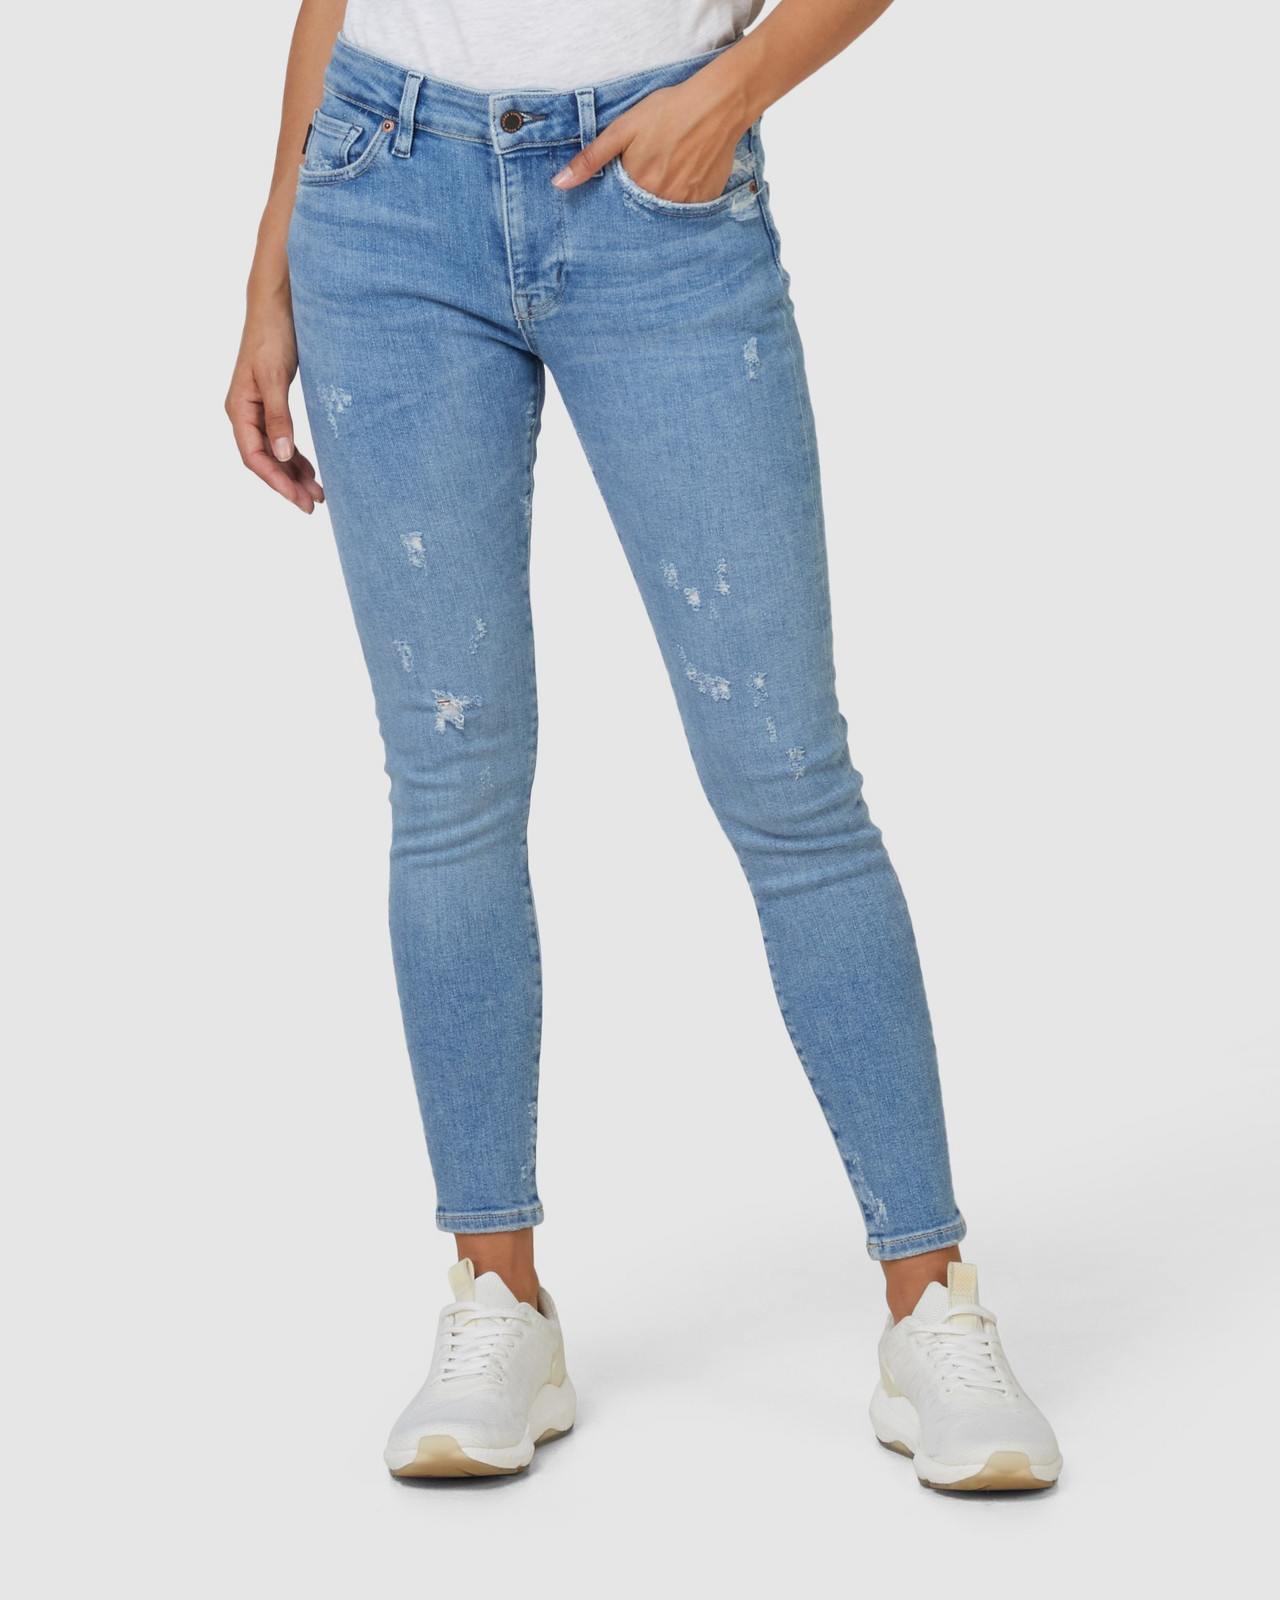 Superdry Womens MID RISE SKINNY Blue Skinny Jeans 1